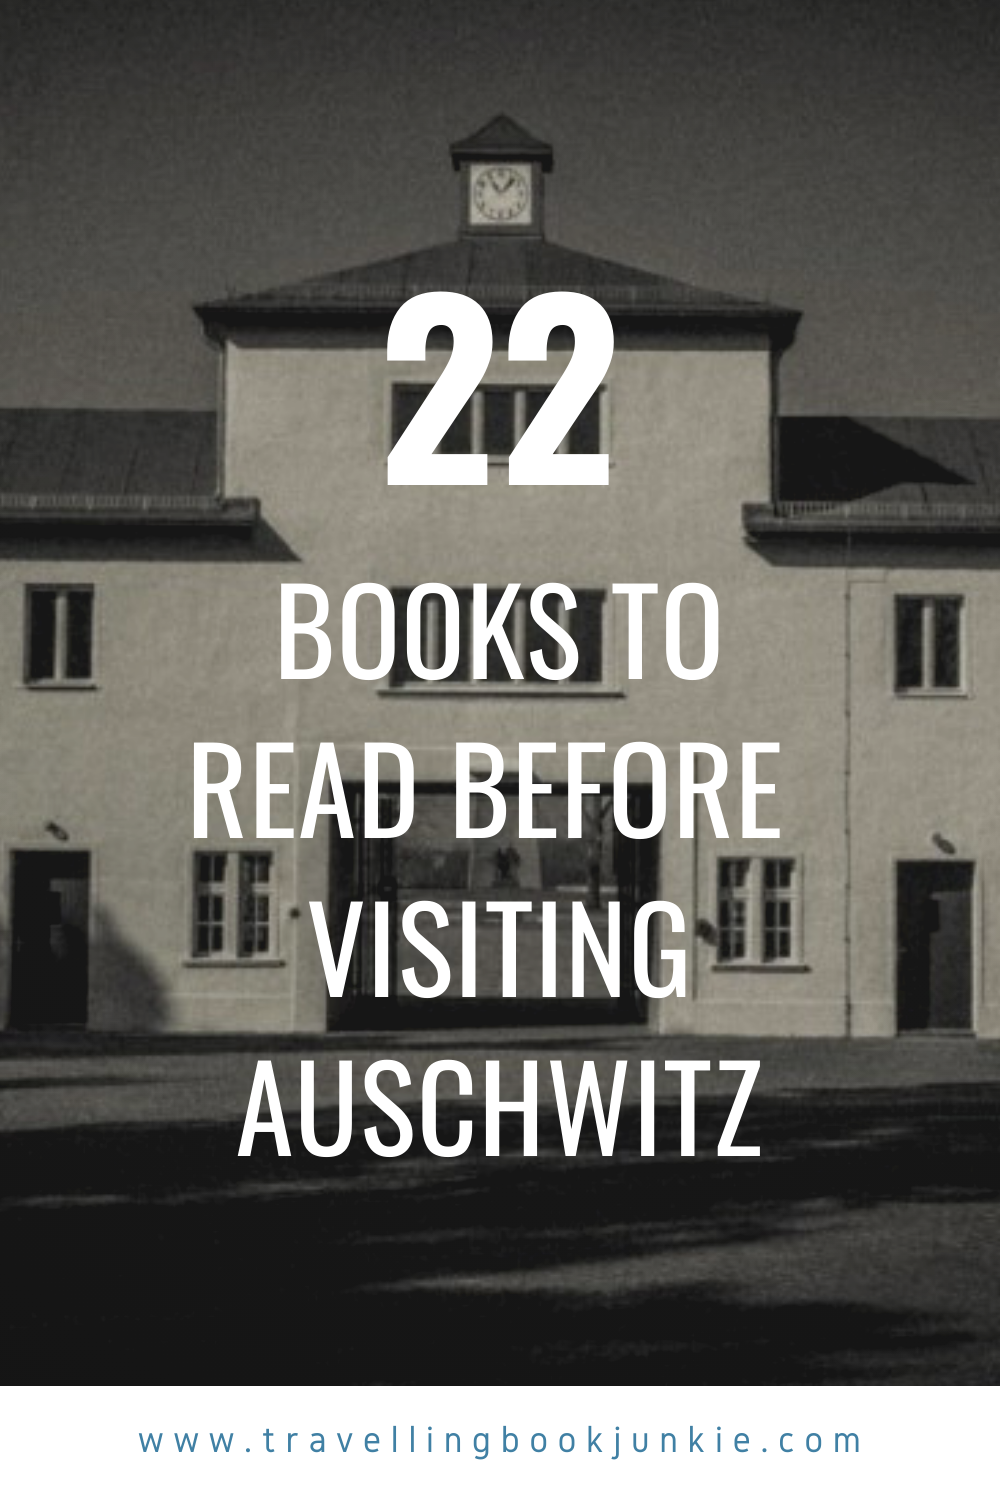 22 books to read before visiting Auschwitz via @tbookjunkie